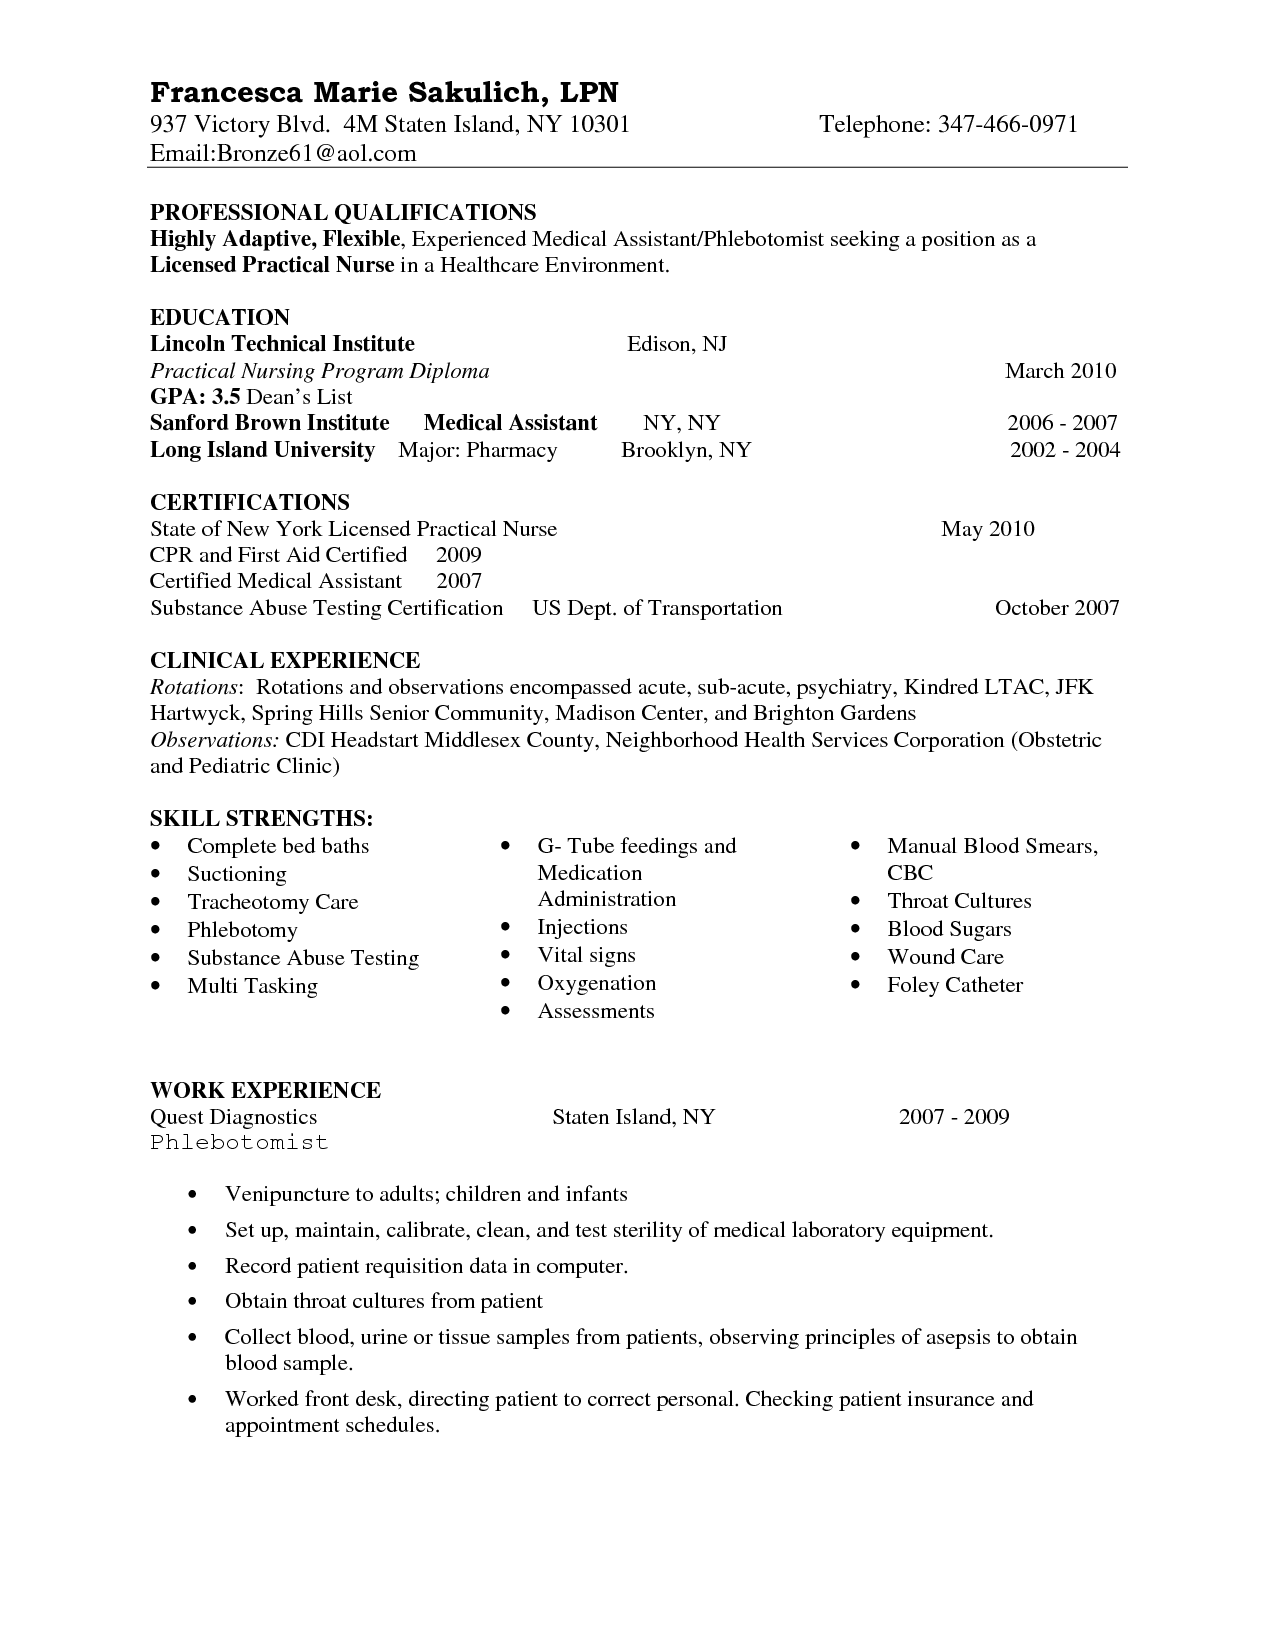 Entry Level LPN Resume Sample Nursing resume, Lpn resume